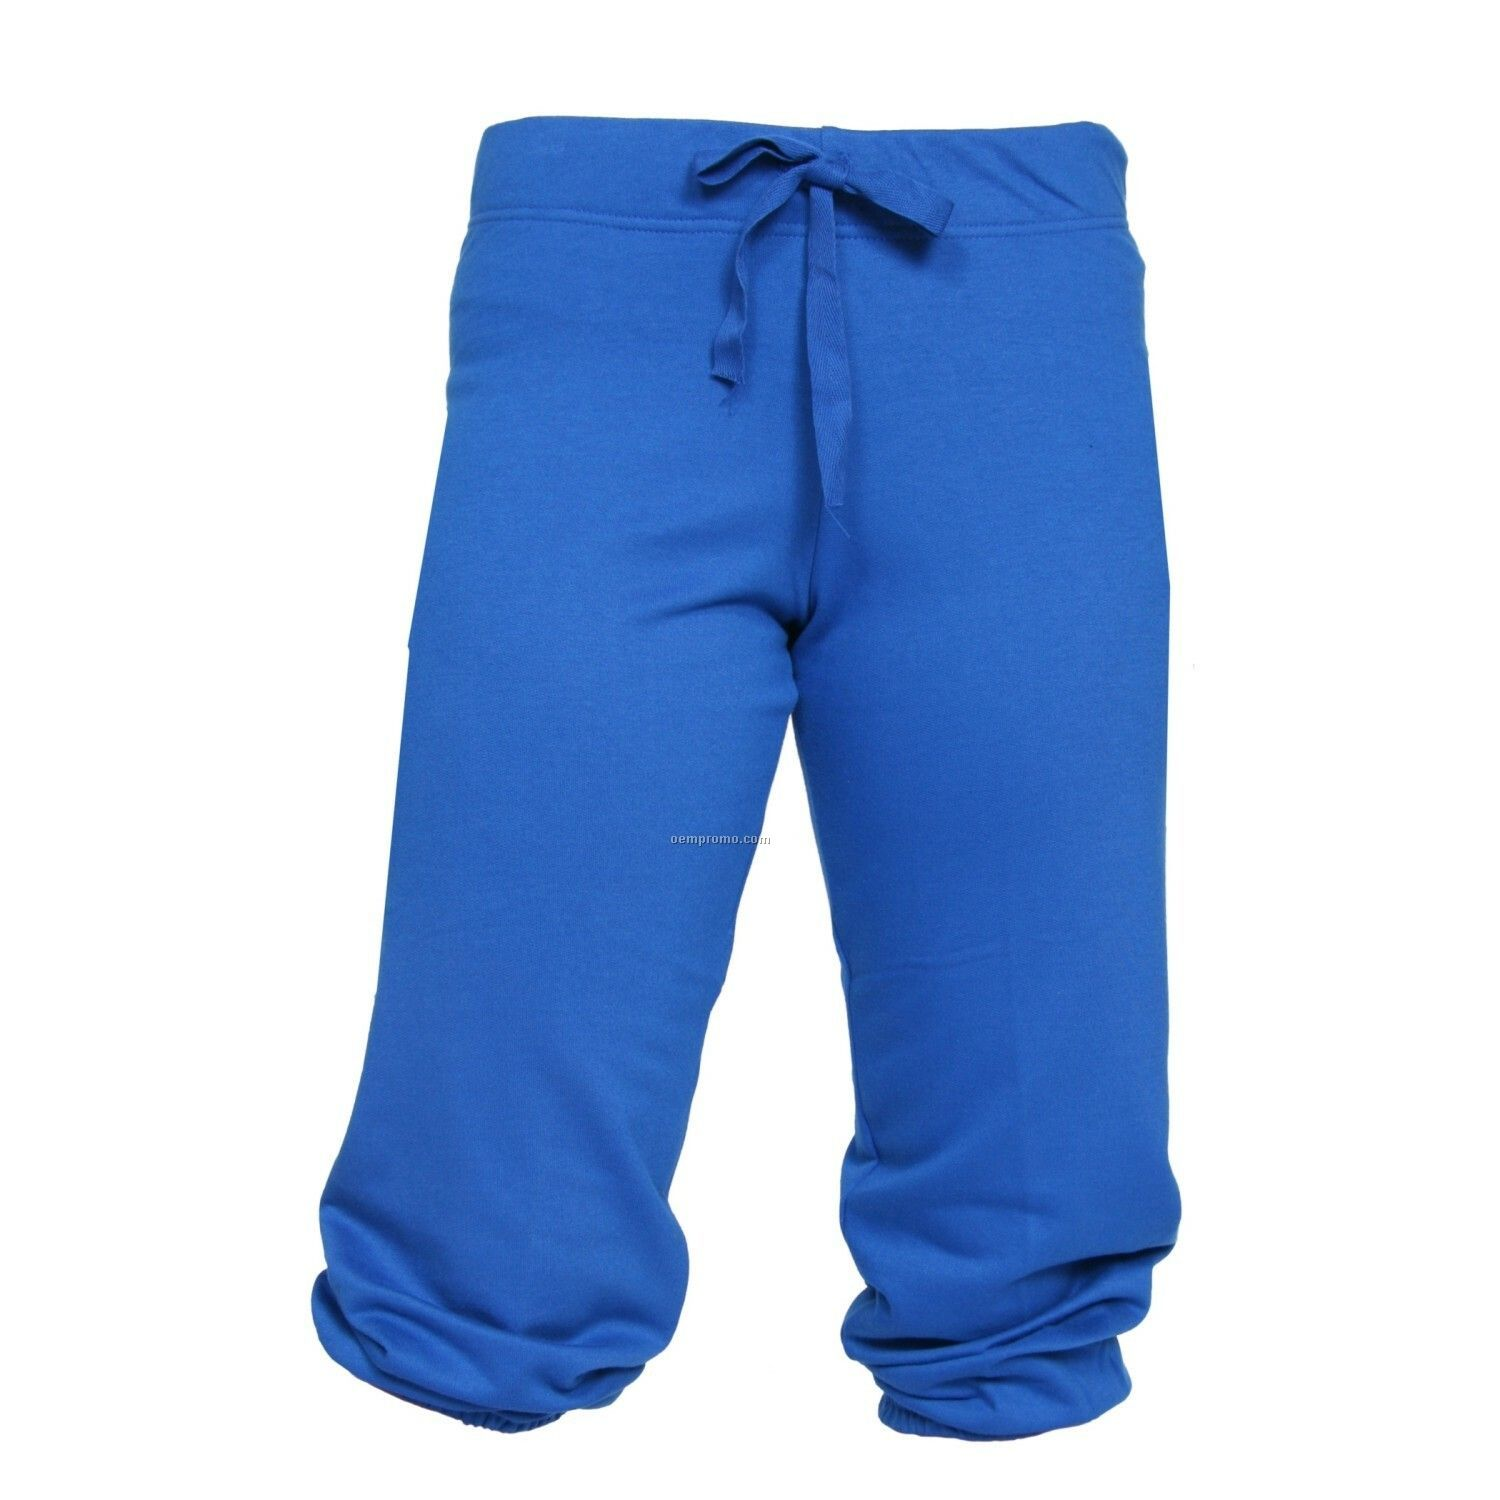 Adult Royal Blue Touchdown Cuffed Sweat Capris